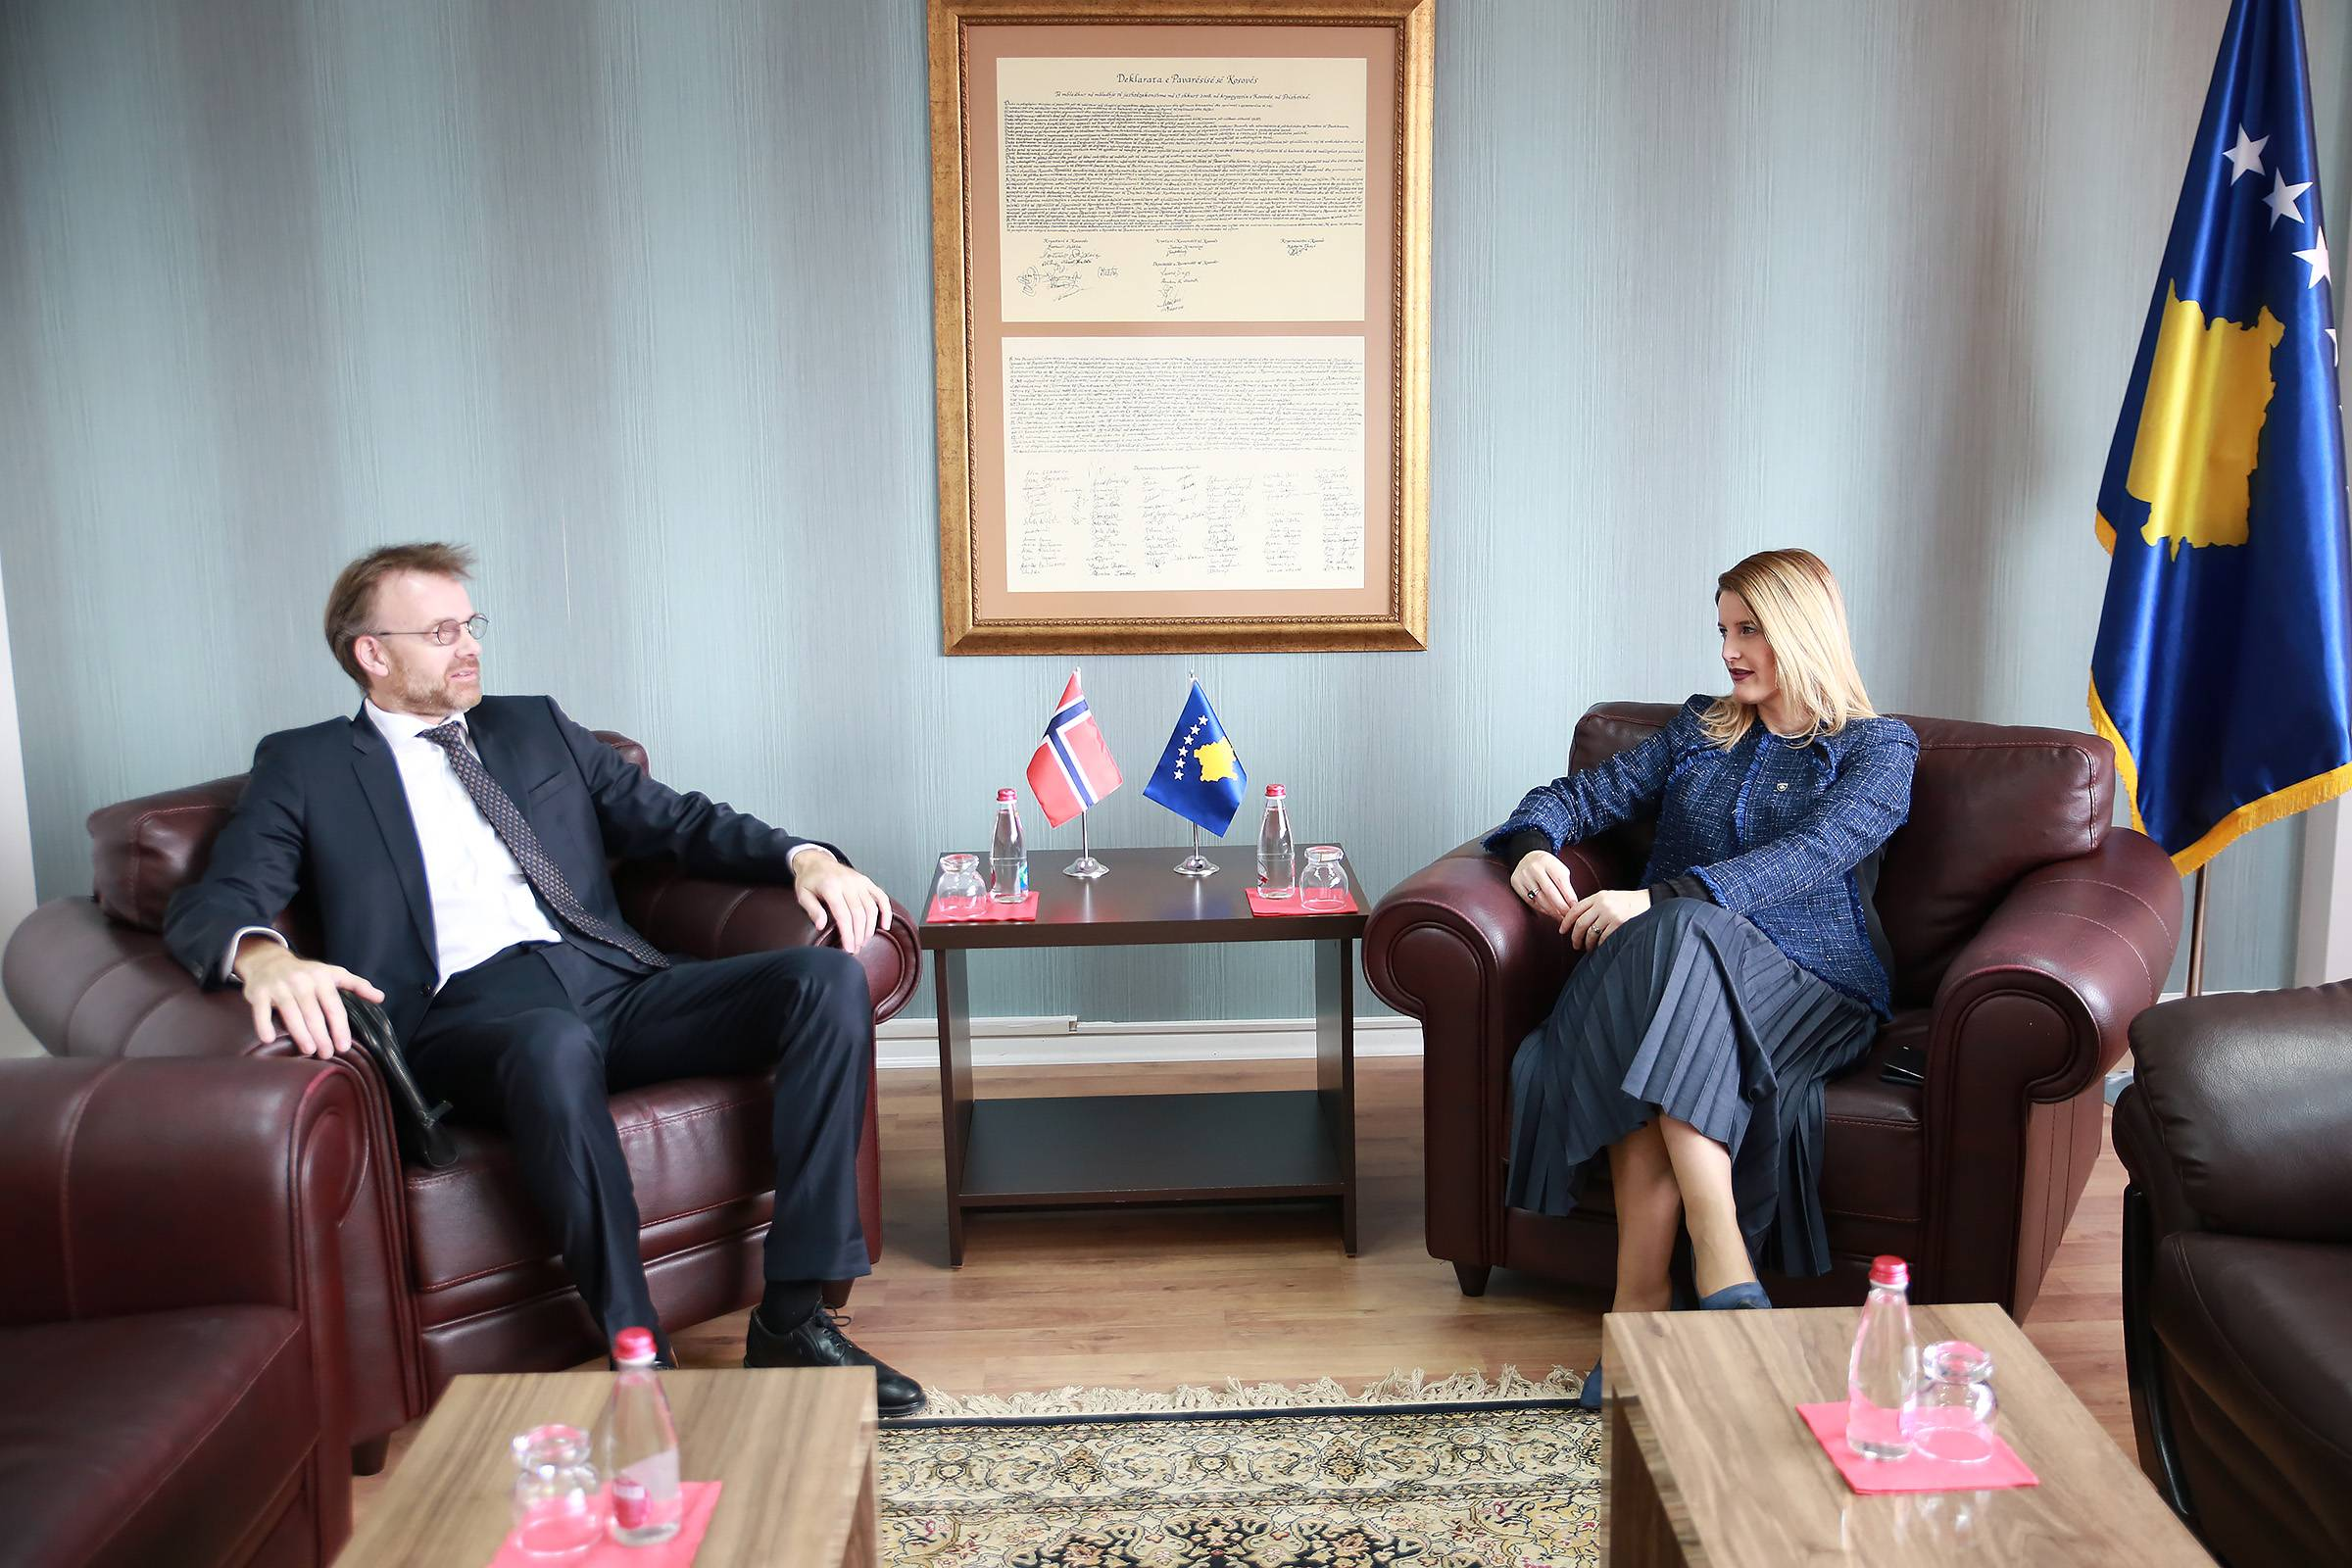 Minister Hoxha highly appreciates Norway's contribution to the integration processes